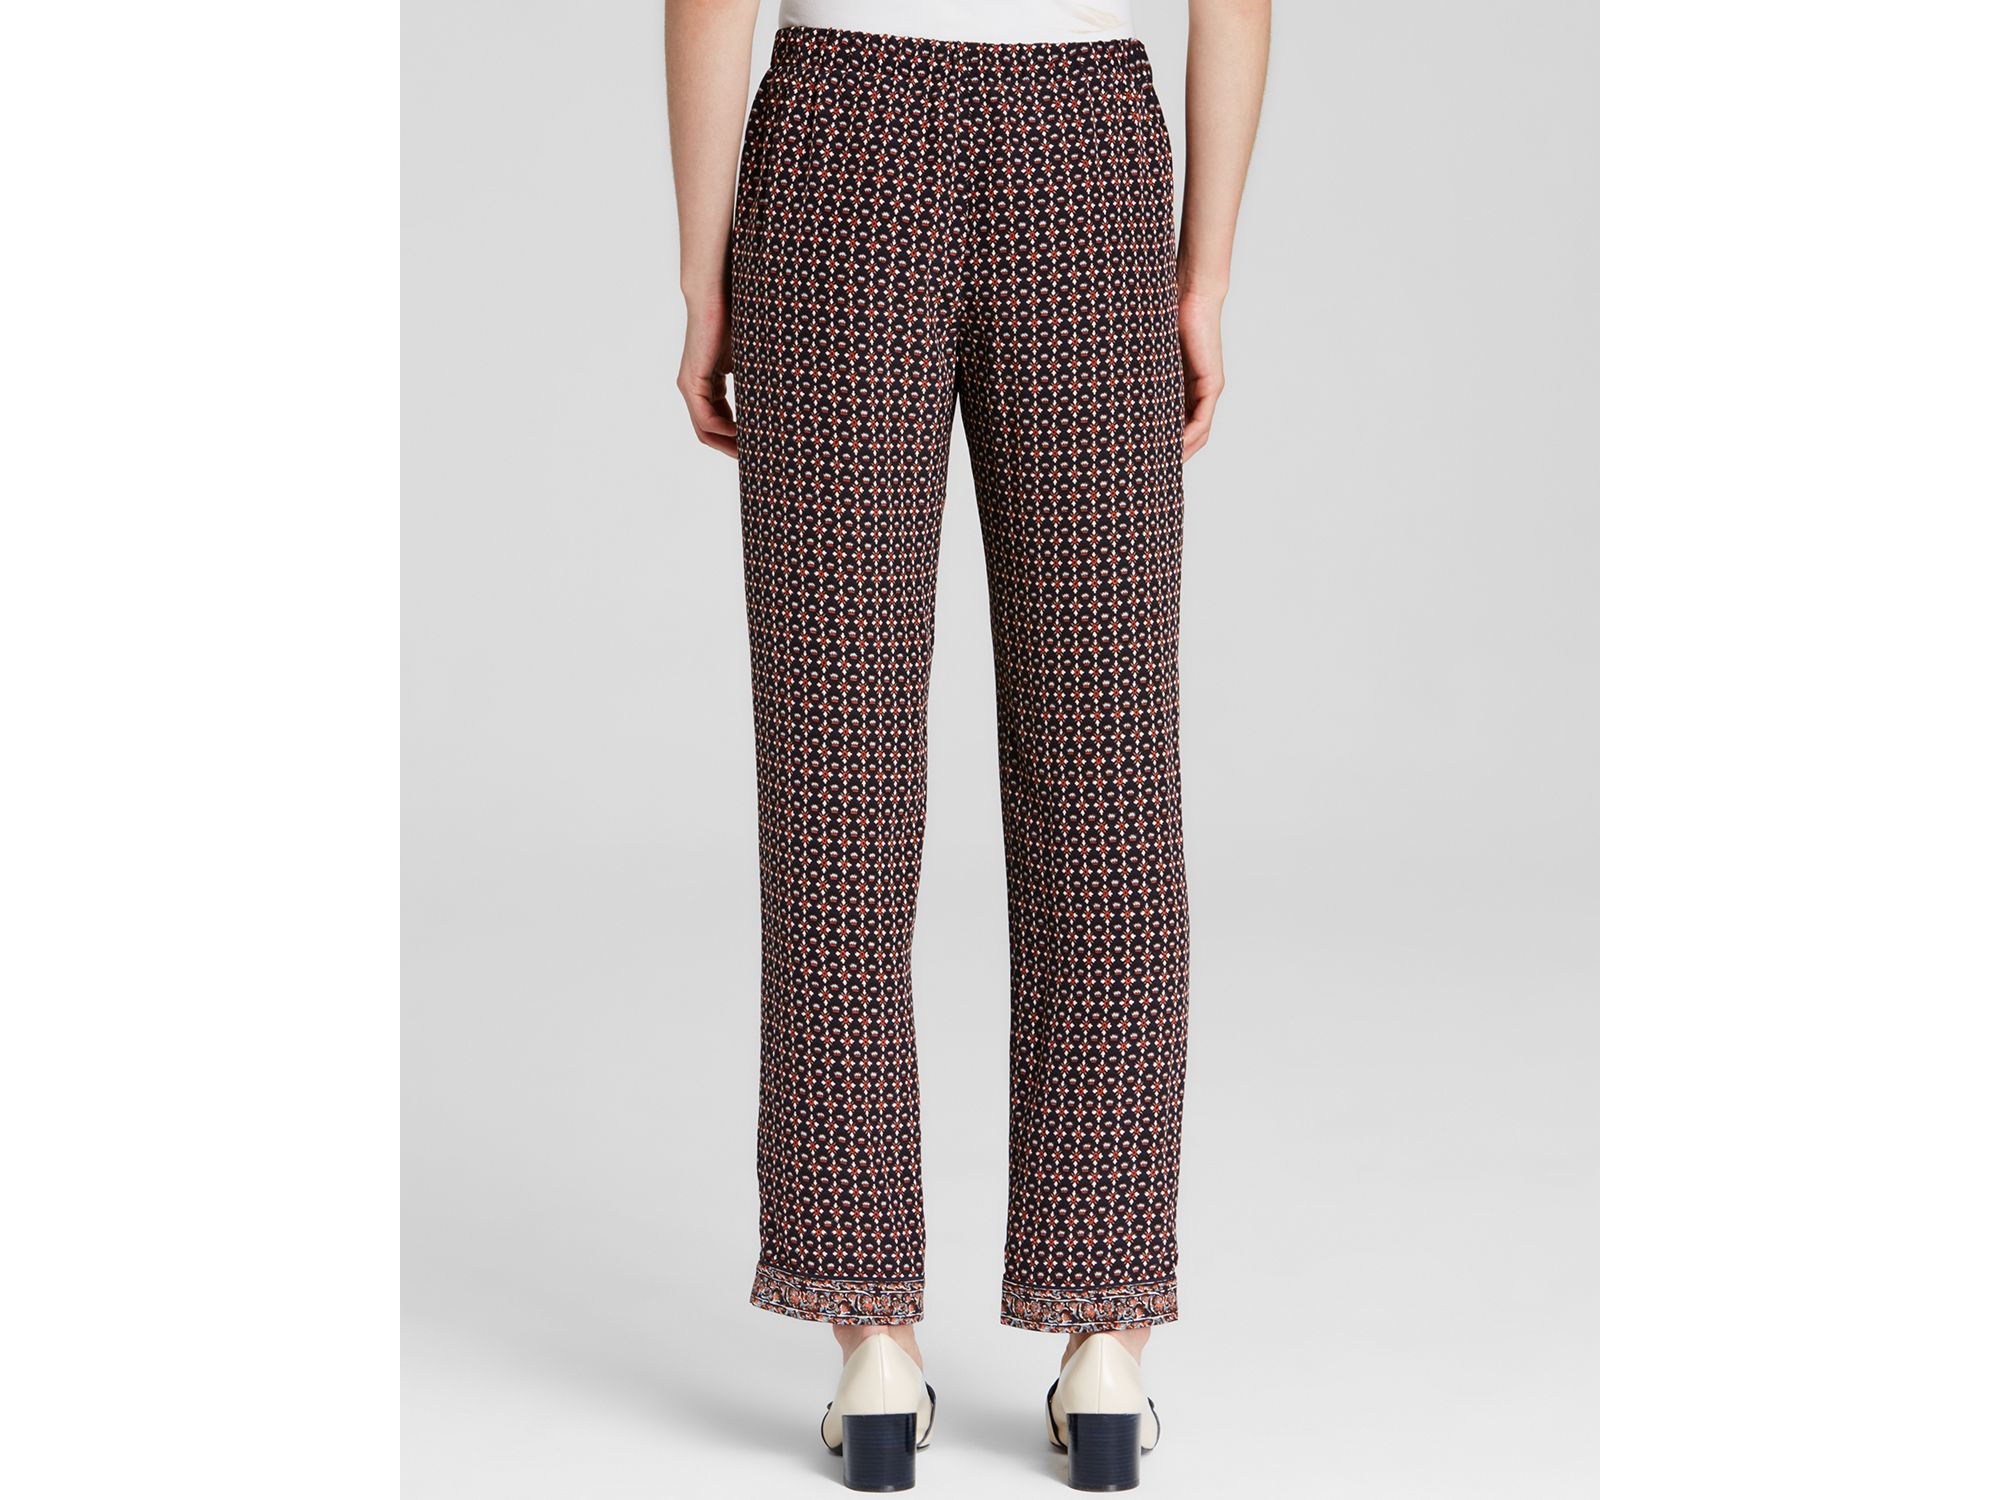 Lyst tory burch geometric floral print silk pants in blue for Tory burch fashion island